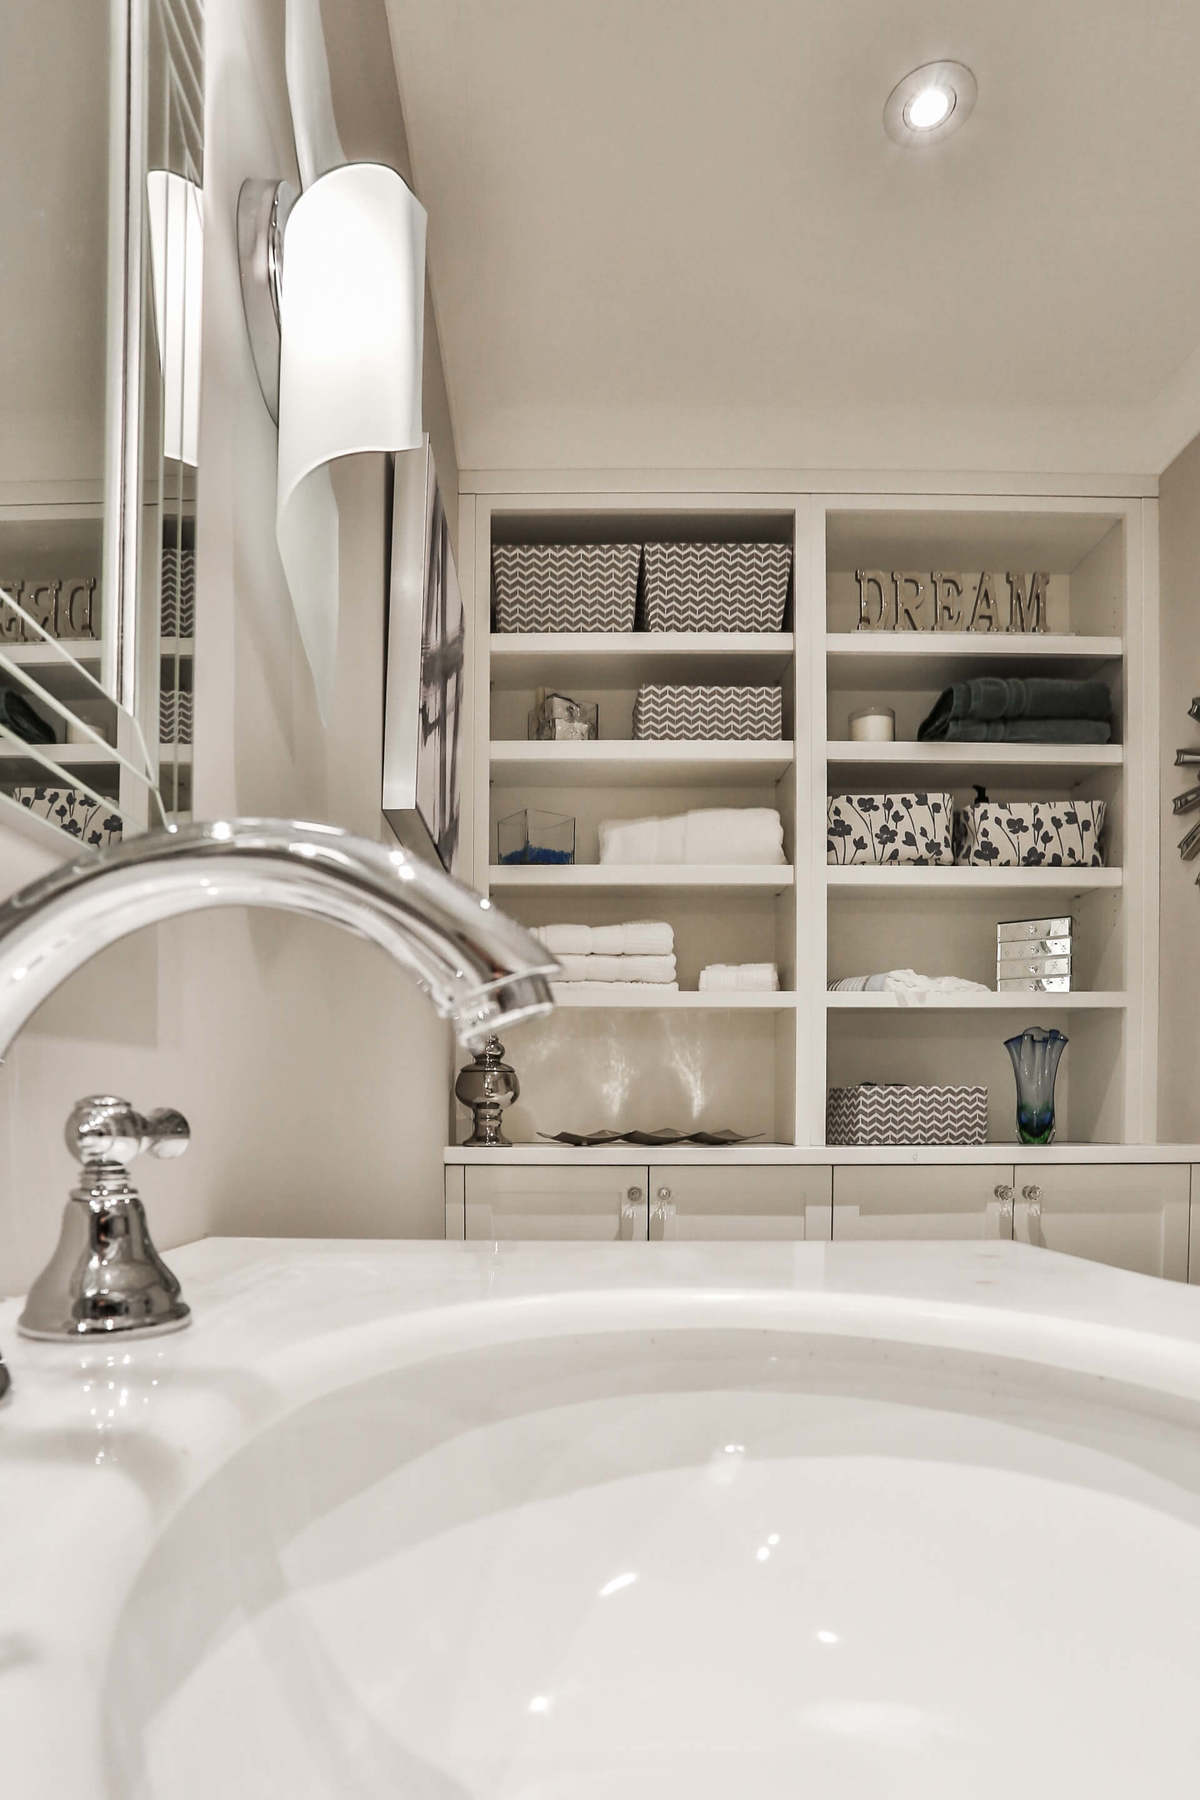 White bathroom design with modern fixtures and generous wall storage.